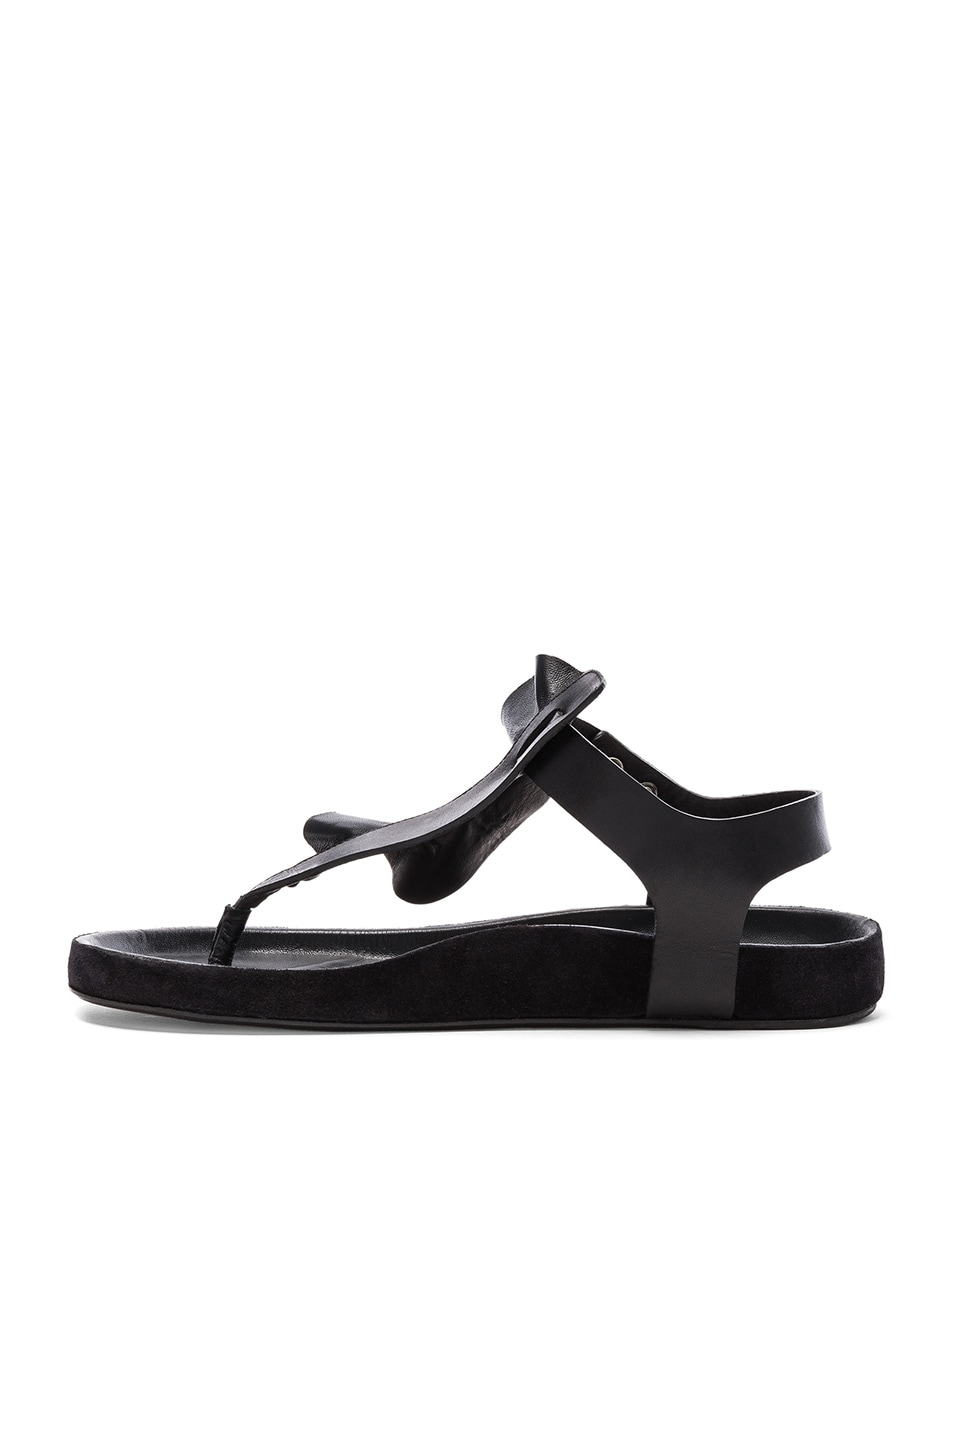 Image 5 of Isabel Marant Leather Leakey Sandals in Black